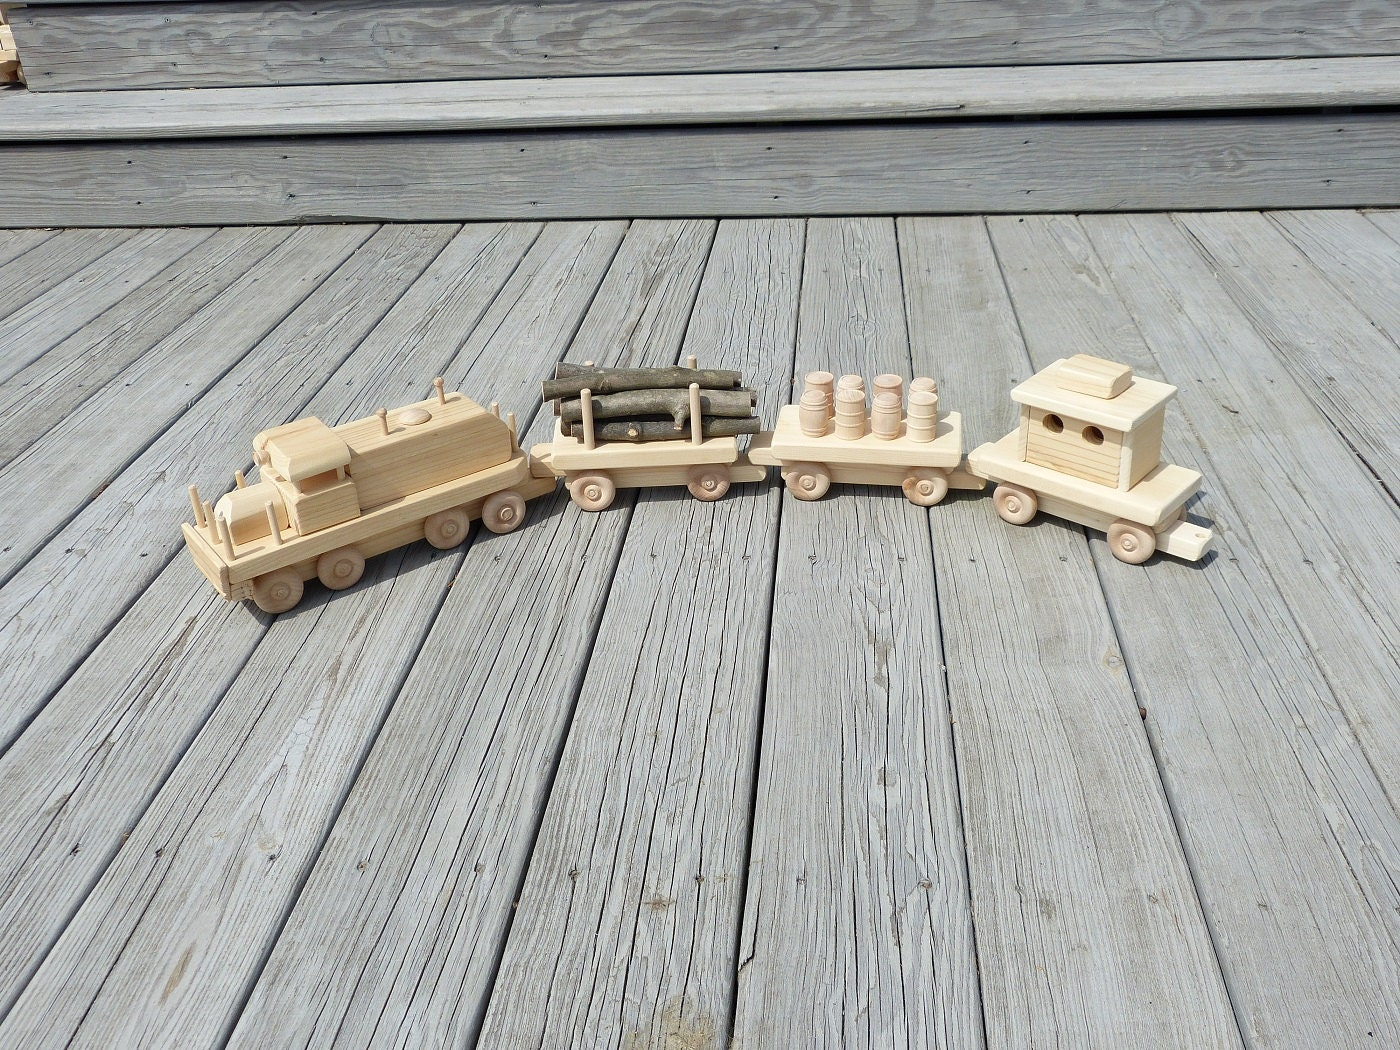 Wooden Toy Trains : Handmade wooden toy train set wood toys adirondack railroad